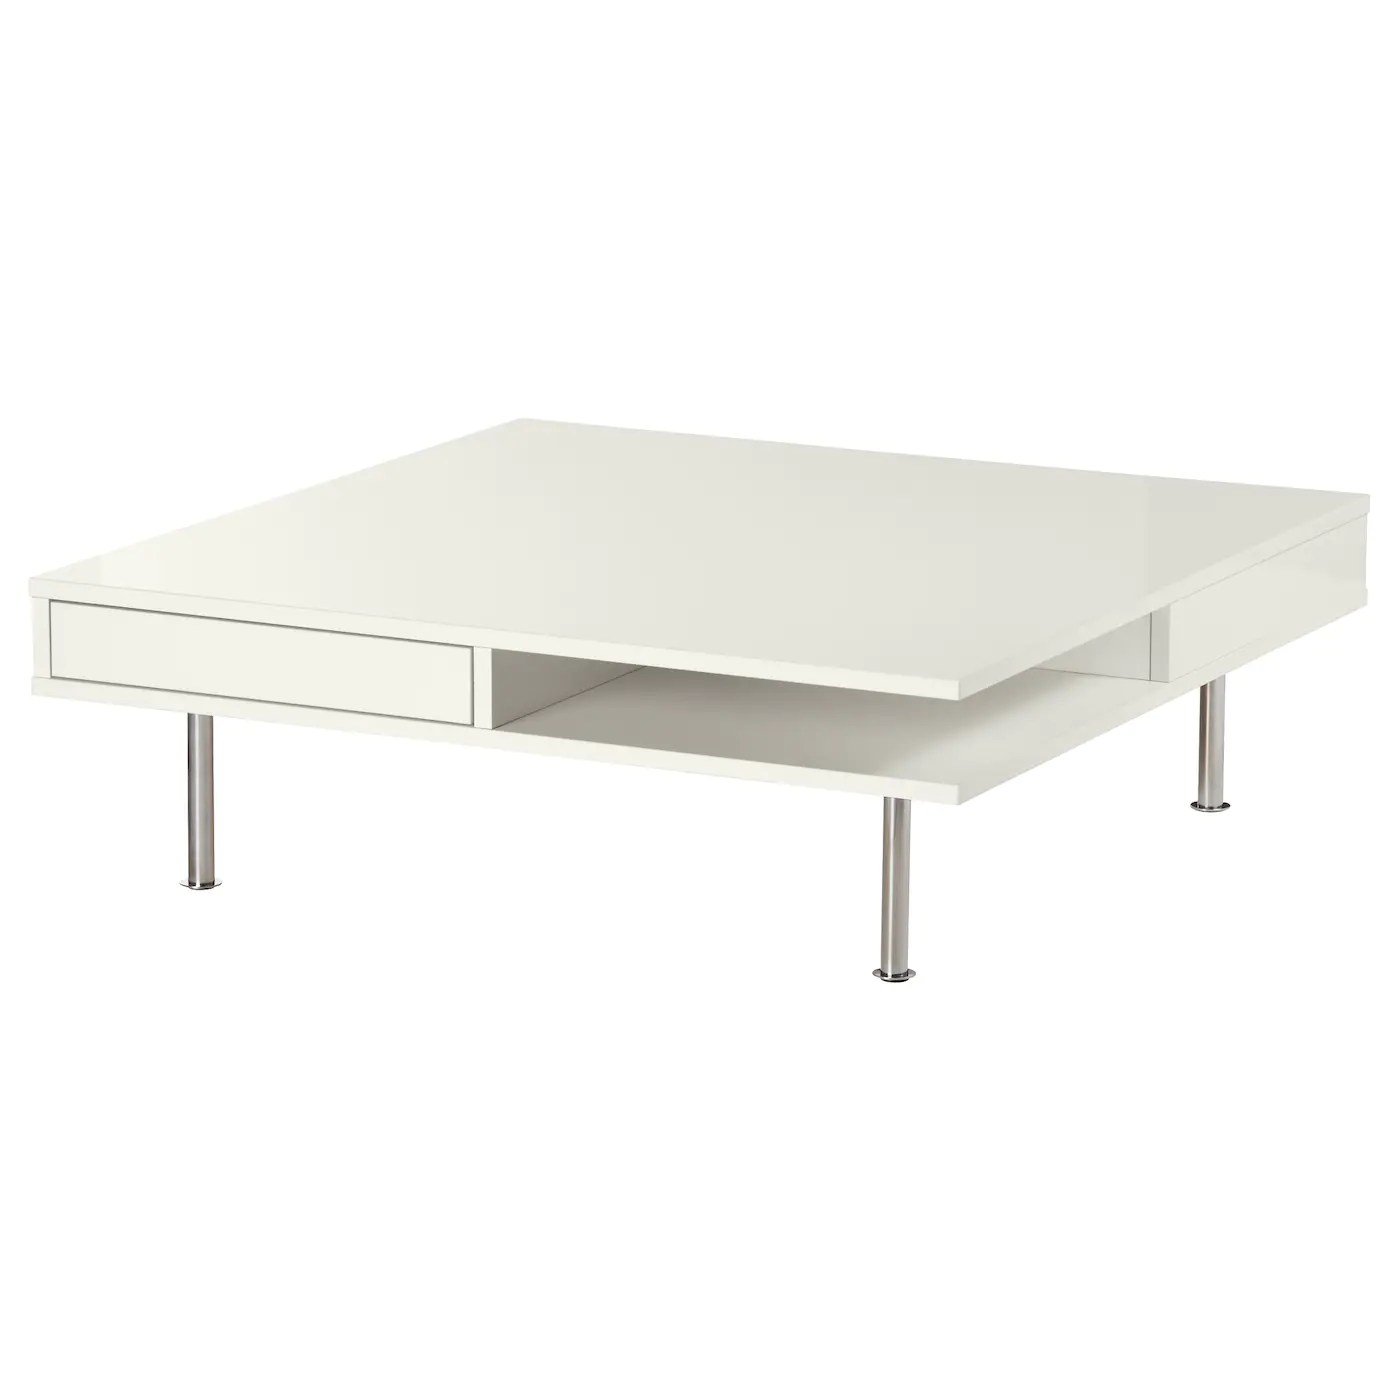 Table Ikea En Verre Table Basse Rectangulaire Blanche Ikea 3 11 Hus Noorderpad De